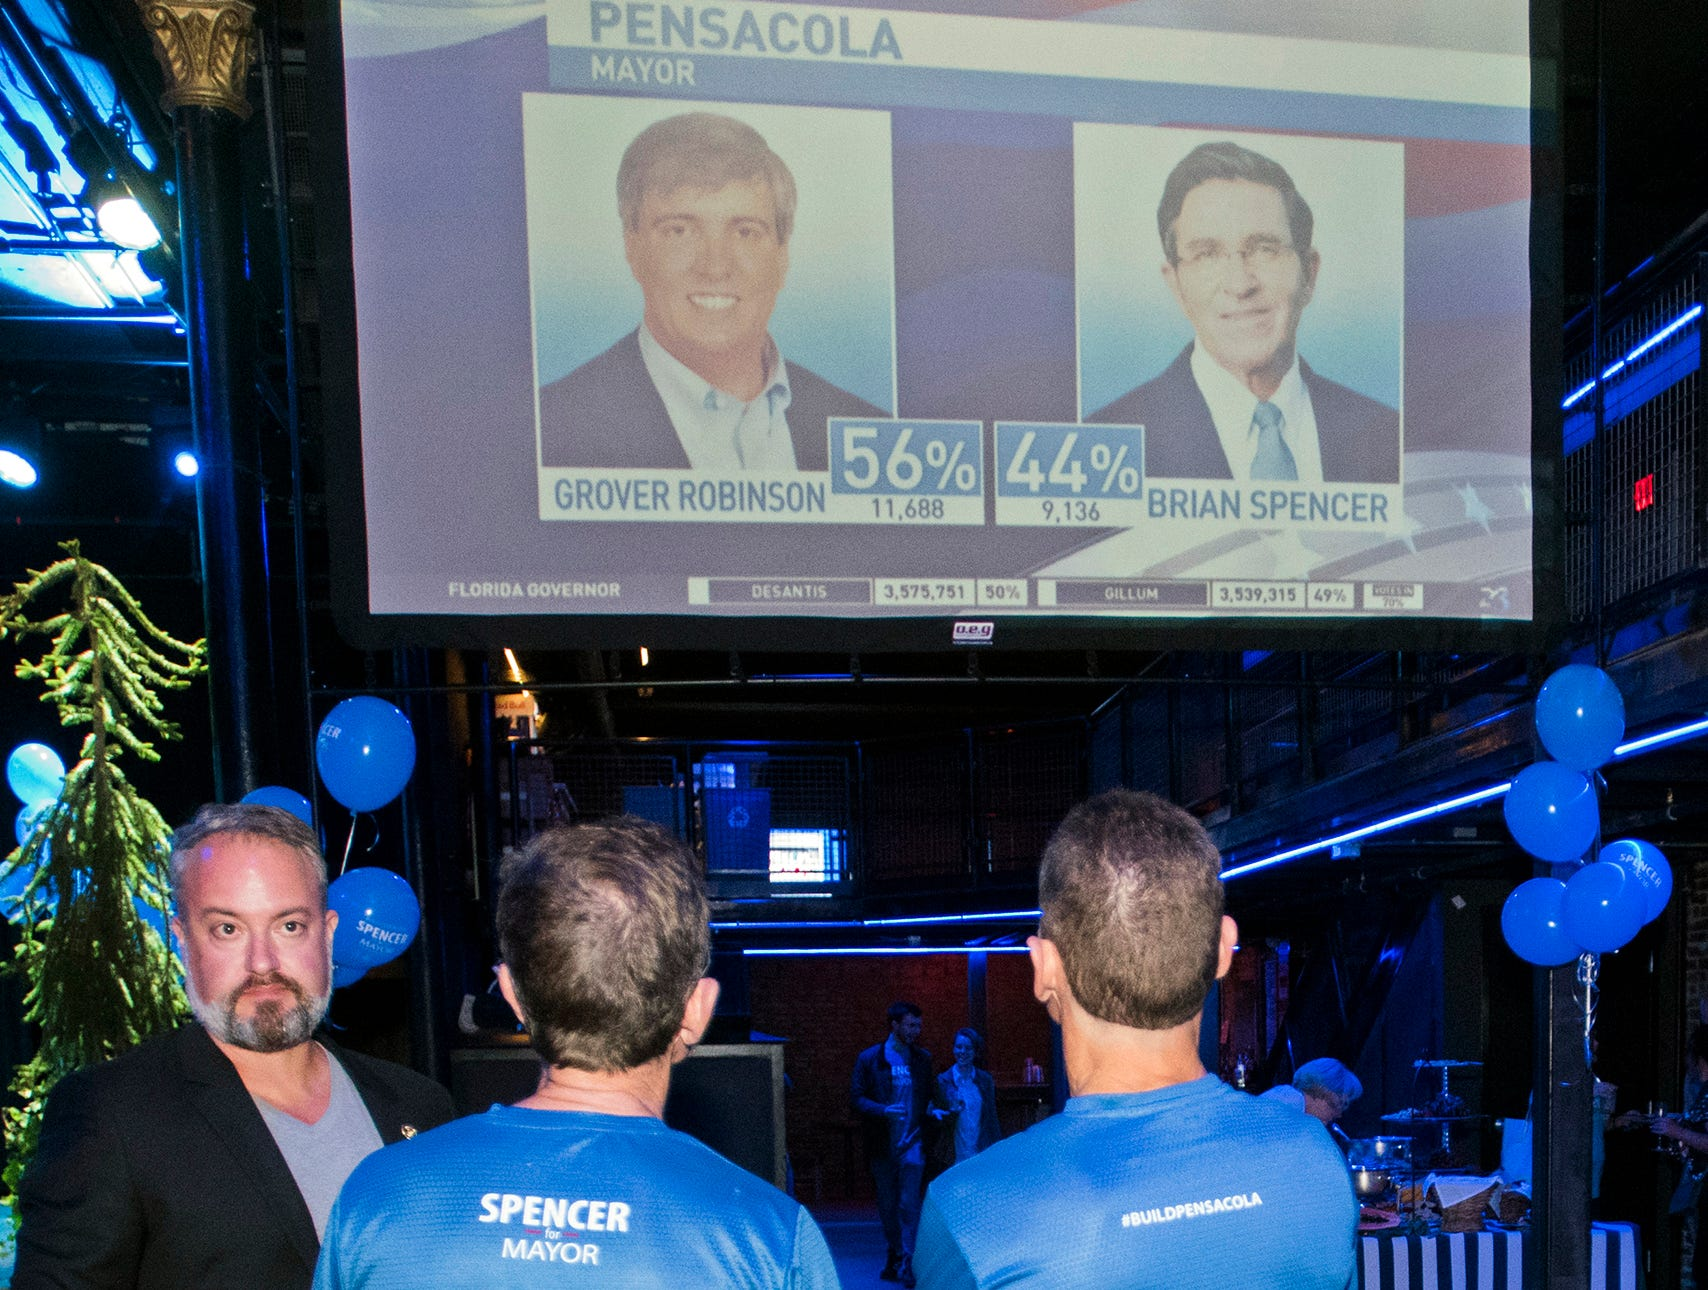 Pensacola Mayoral Candidate Brian Spencer and a few of his supporters watch the election result come in on Tuesday night. Spencer's opponent Grover Robinson won the election.